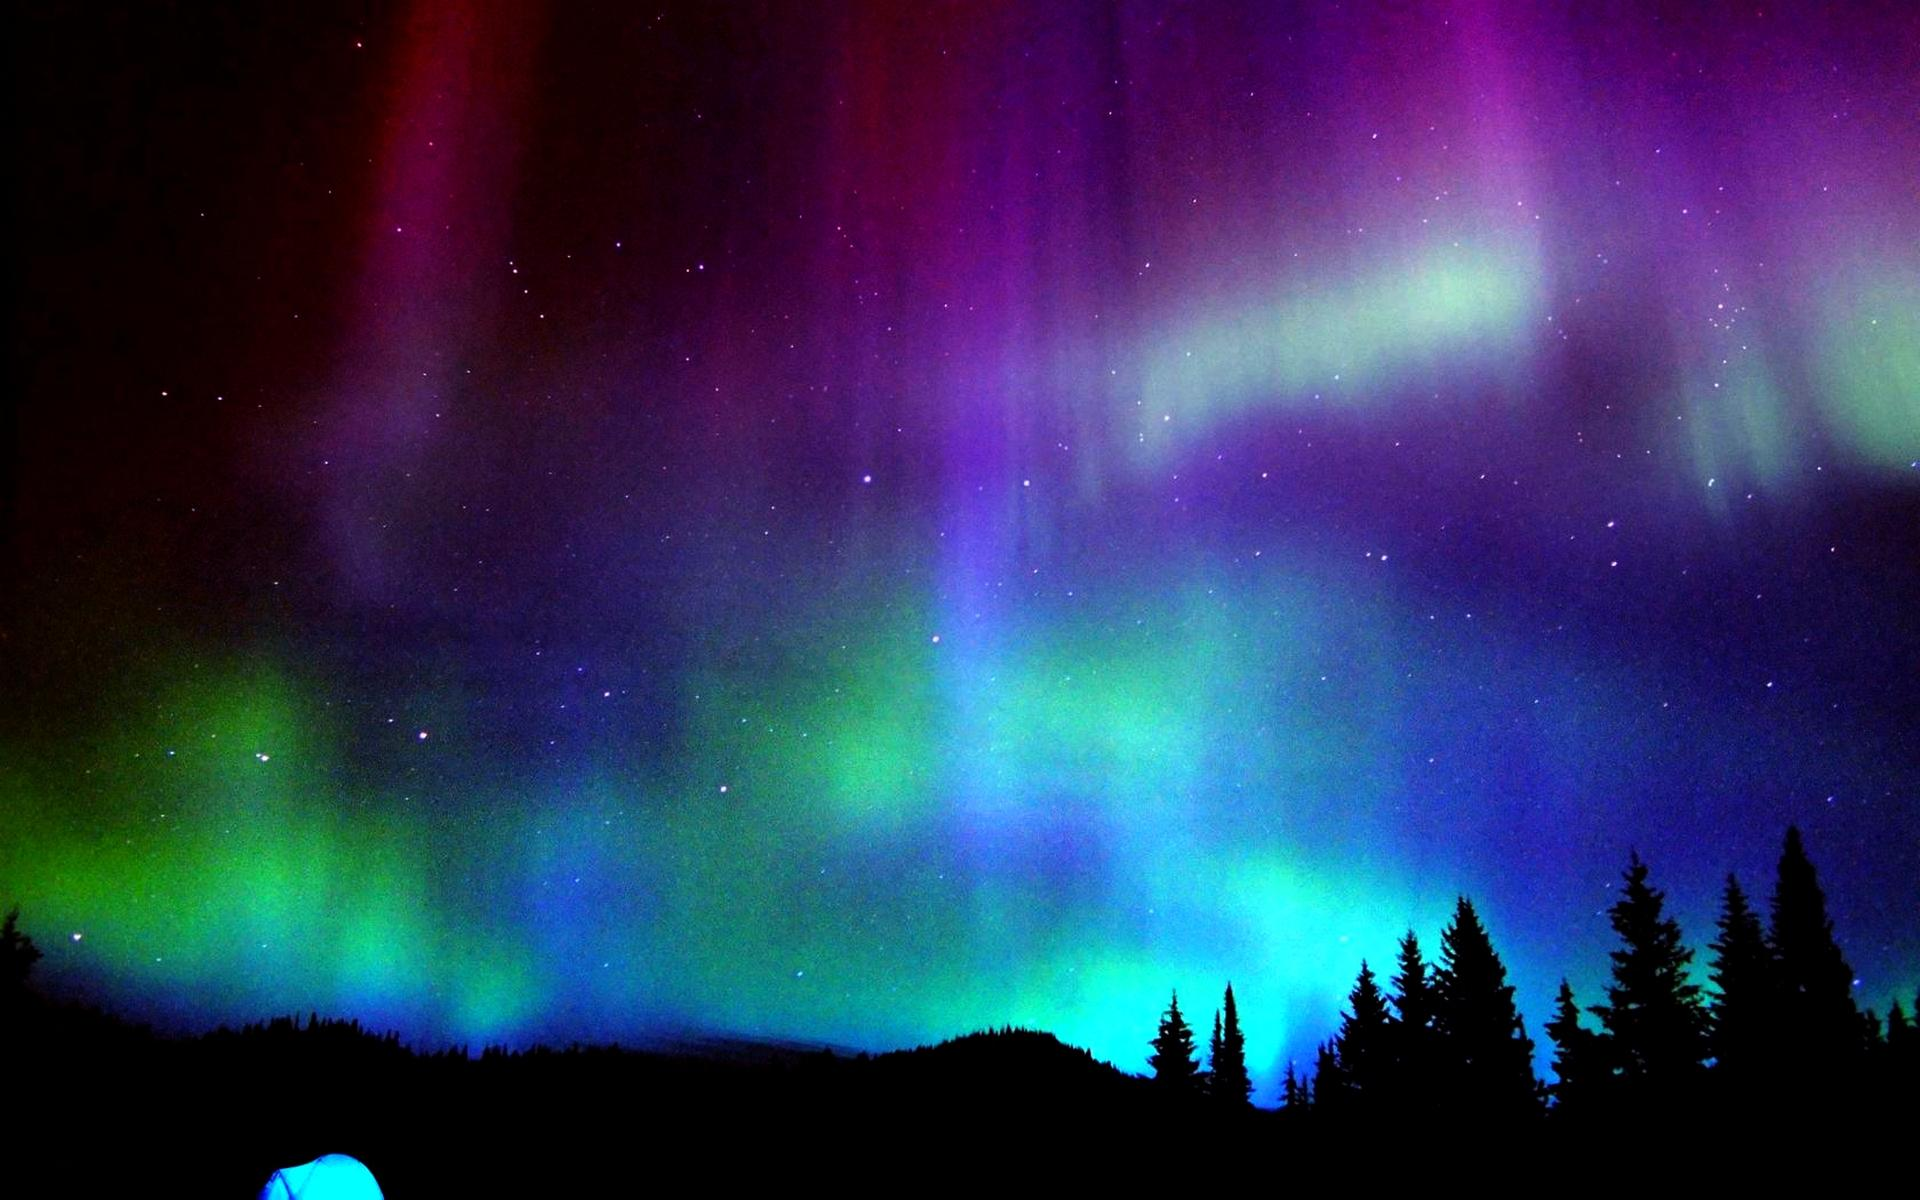 Aurora Borealis 35 HD Screensavers Wallpaper